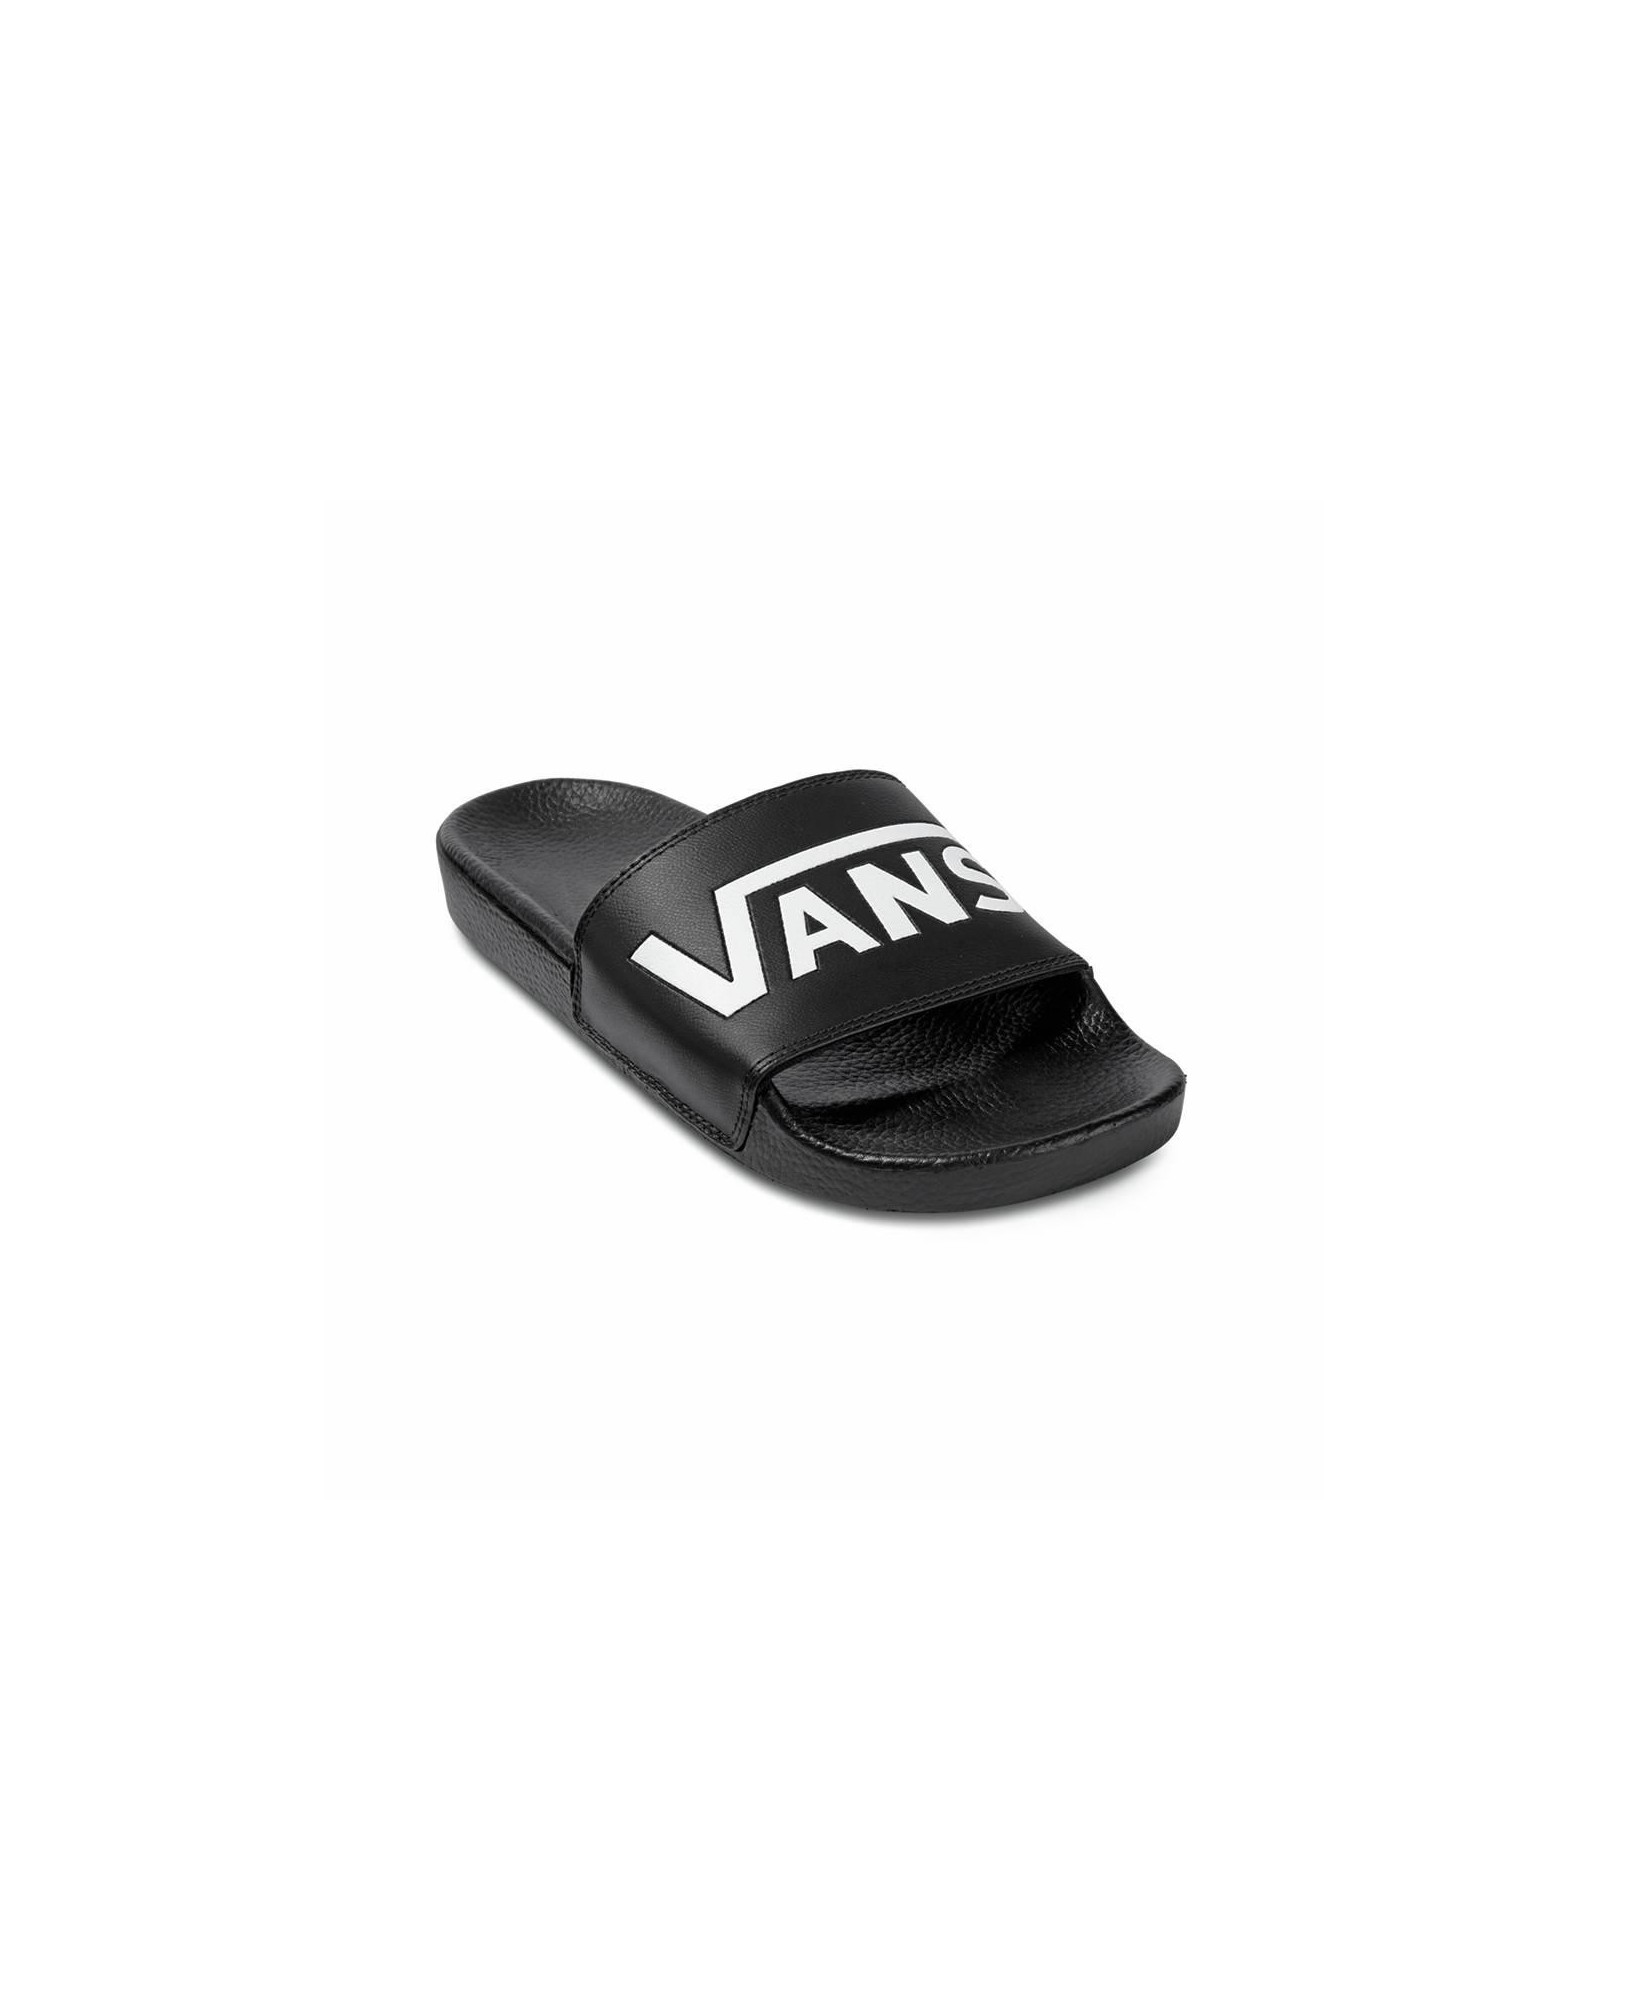 CHANCLAS SLIDE-ON CHANCLAS SLIDE-ON